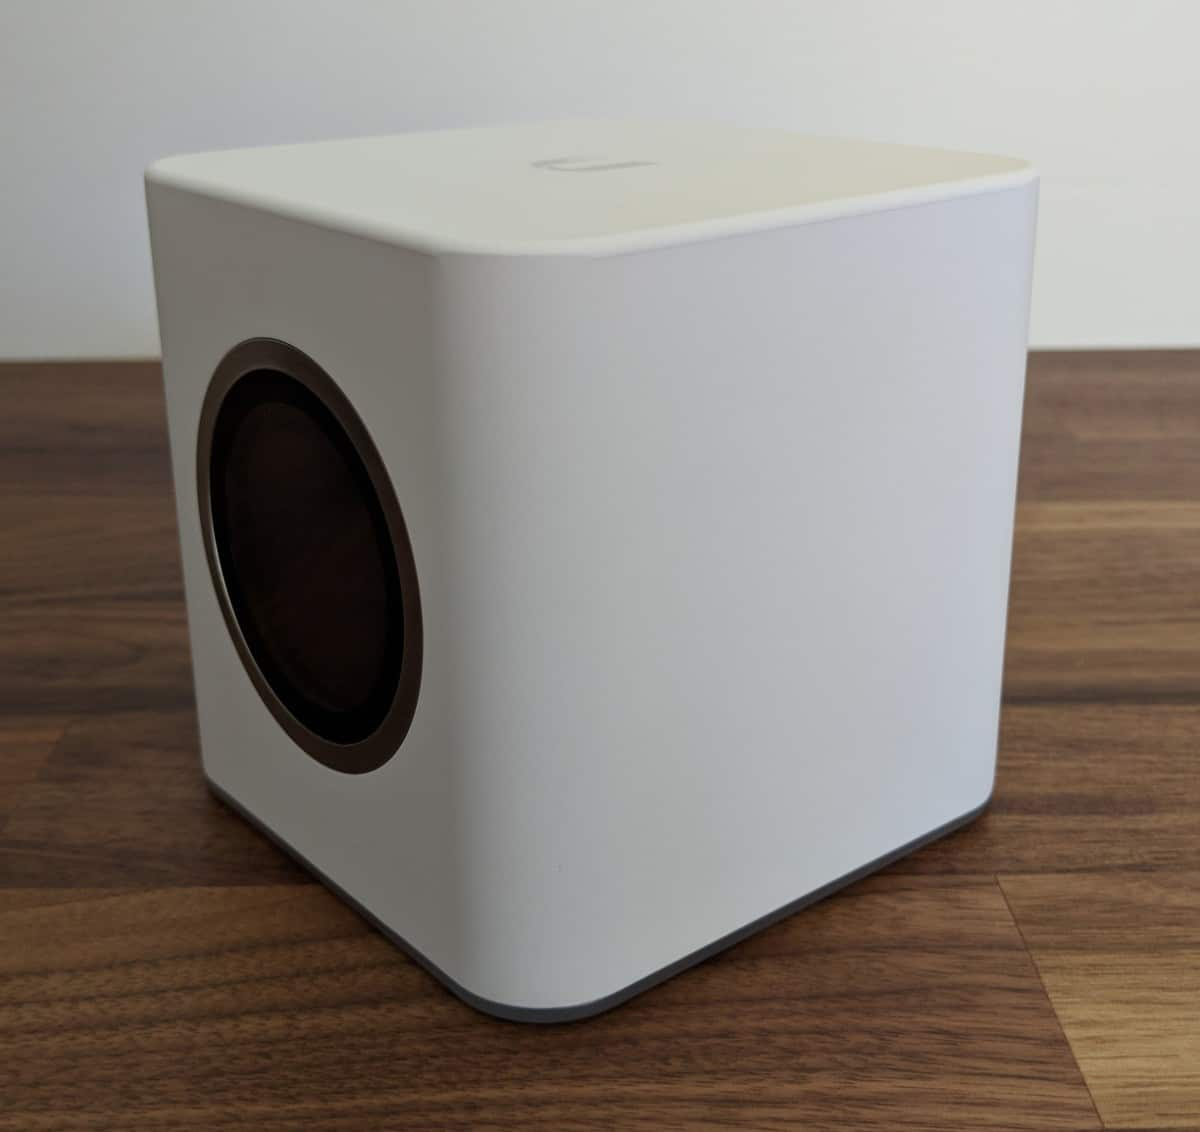 AmplifiHD-Screens-05 Amplifi HD Review